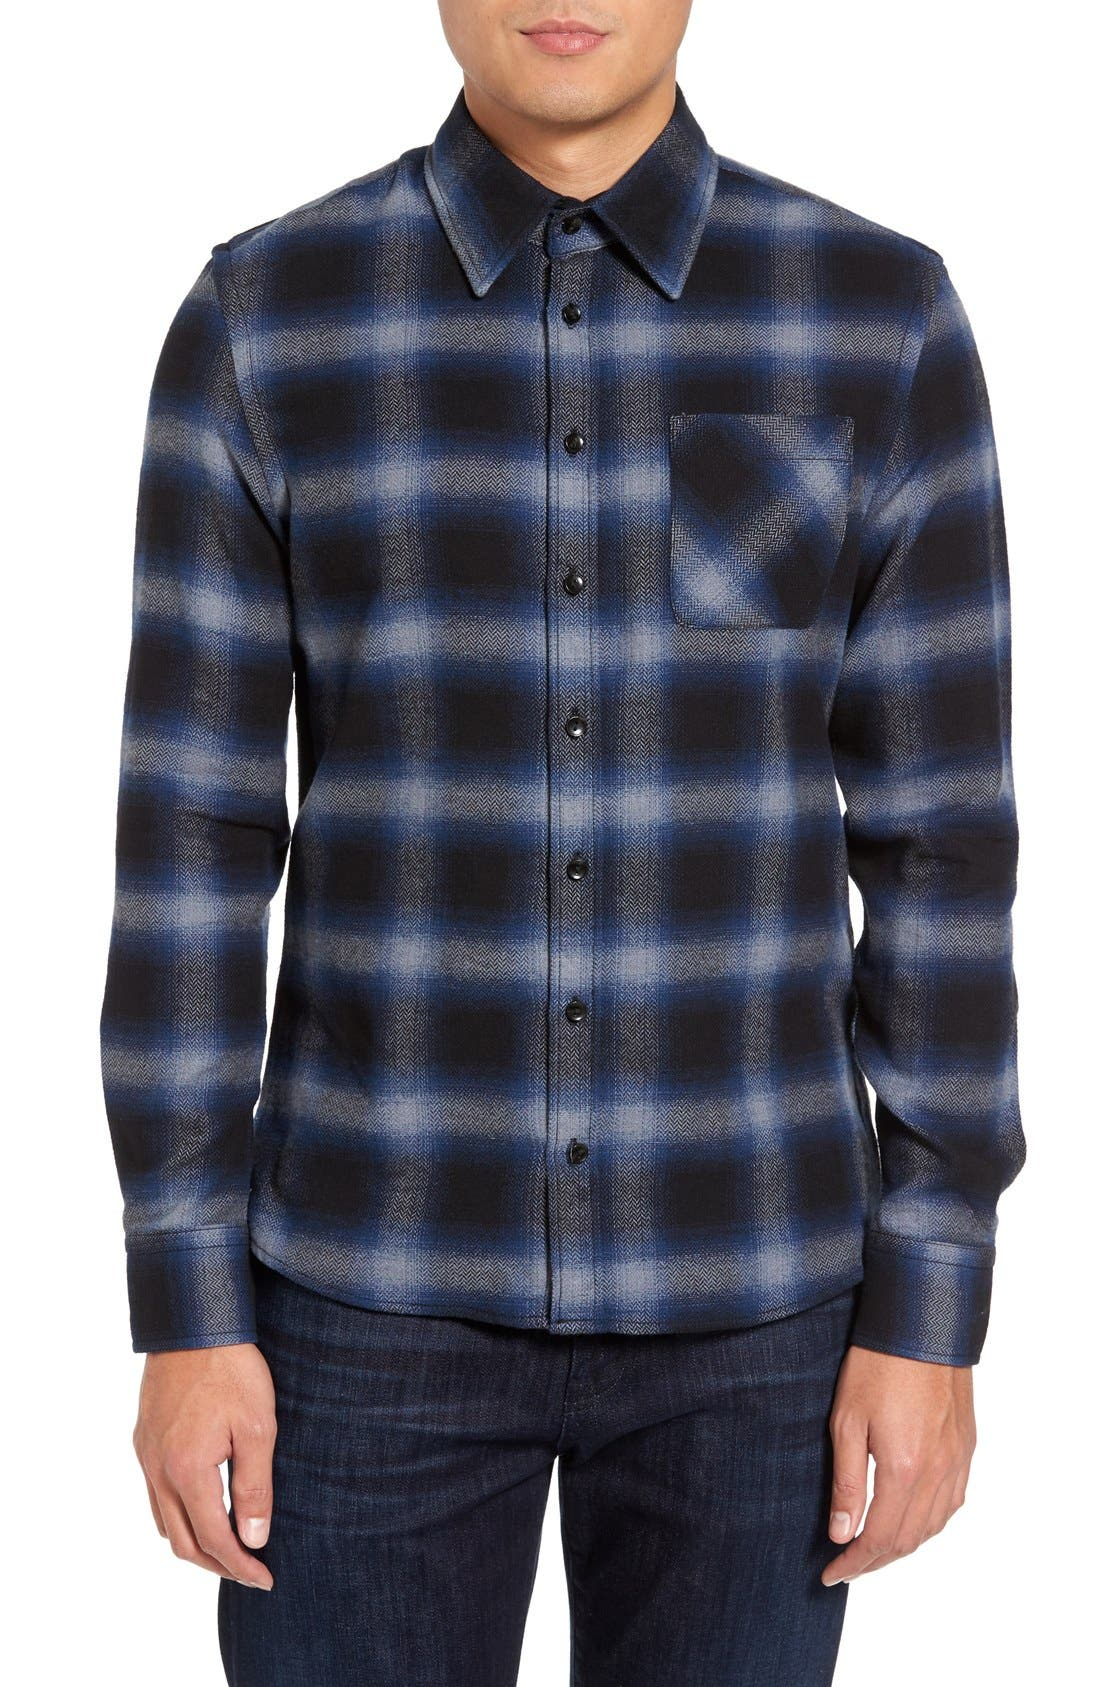 Michael Slim Fit Plaid Flannel Shirt,                         Main,                         color, Blue